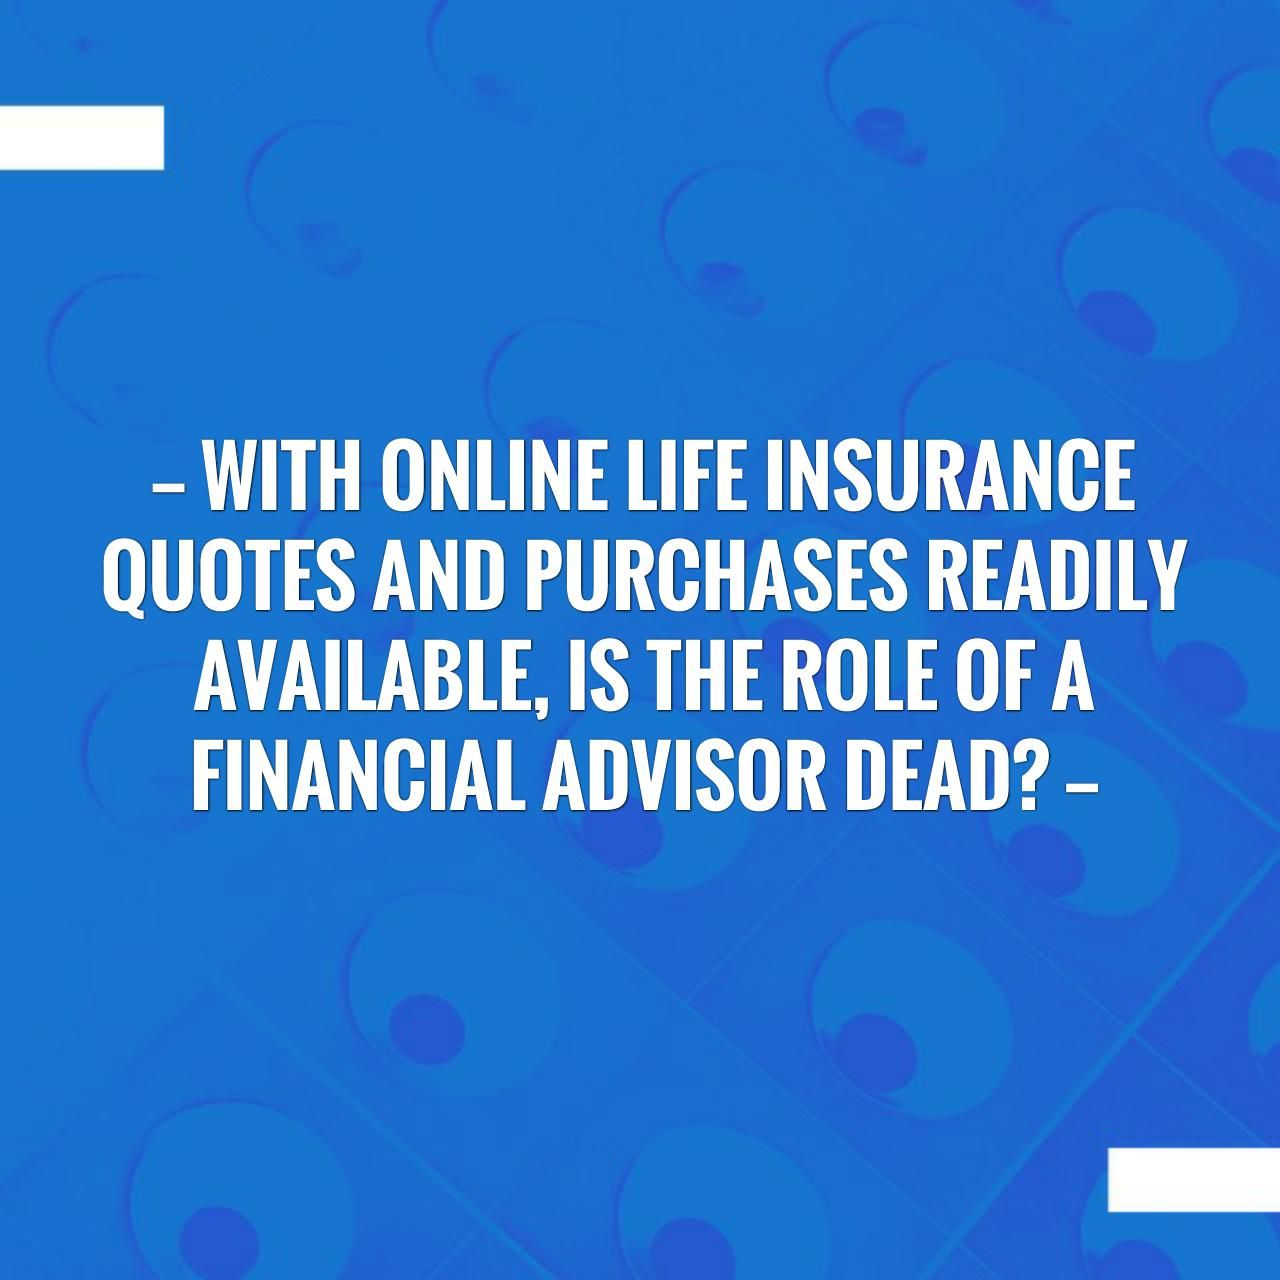 Life Insurance Online Quote Love A Good Read Grab Your Cuppa For This One☕ With Online